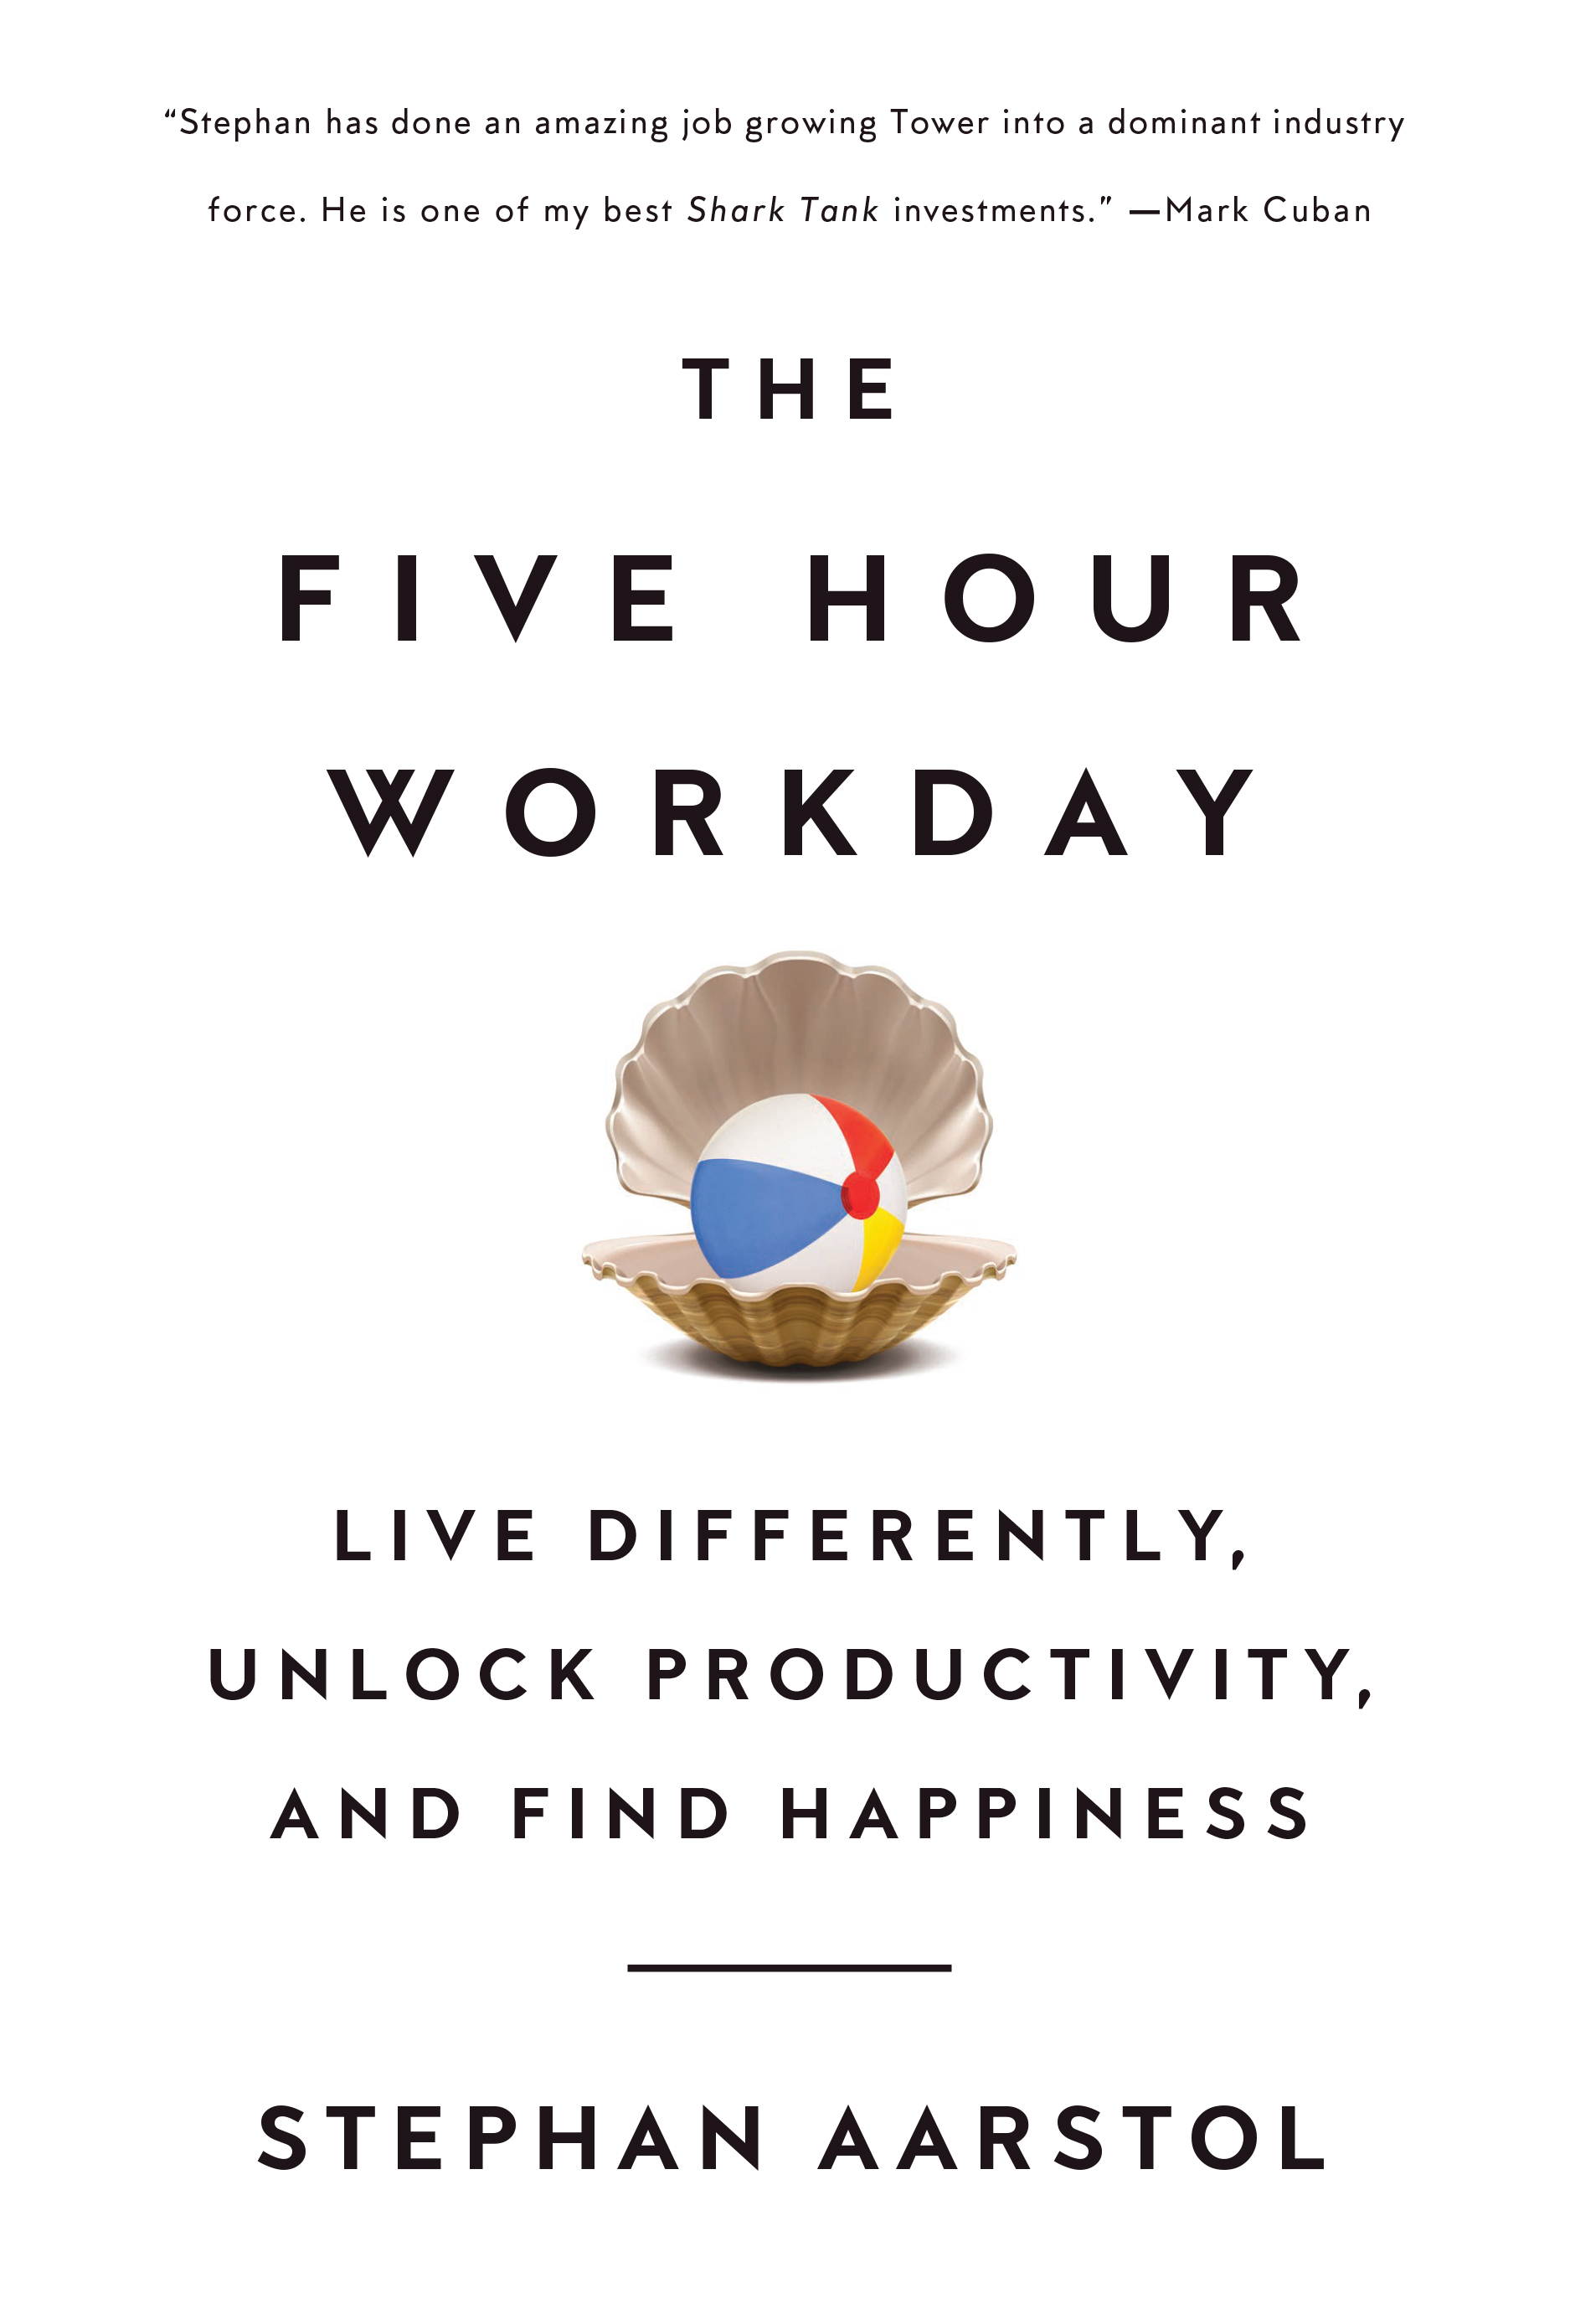 the-five-hour-workday-stephan-aarstol